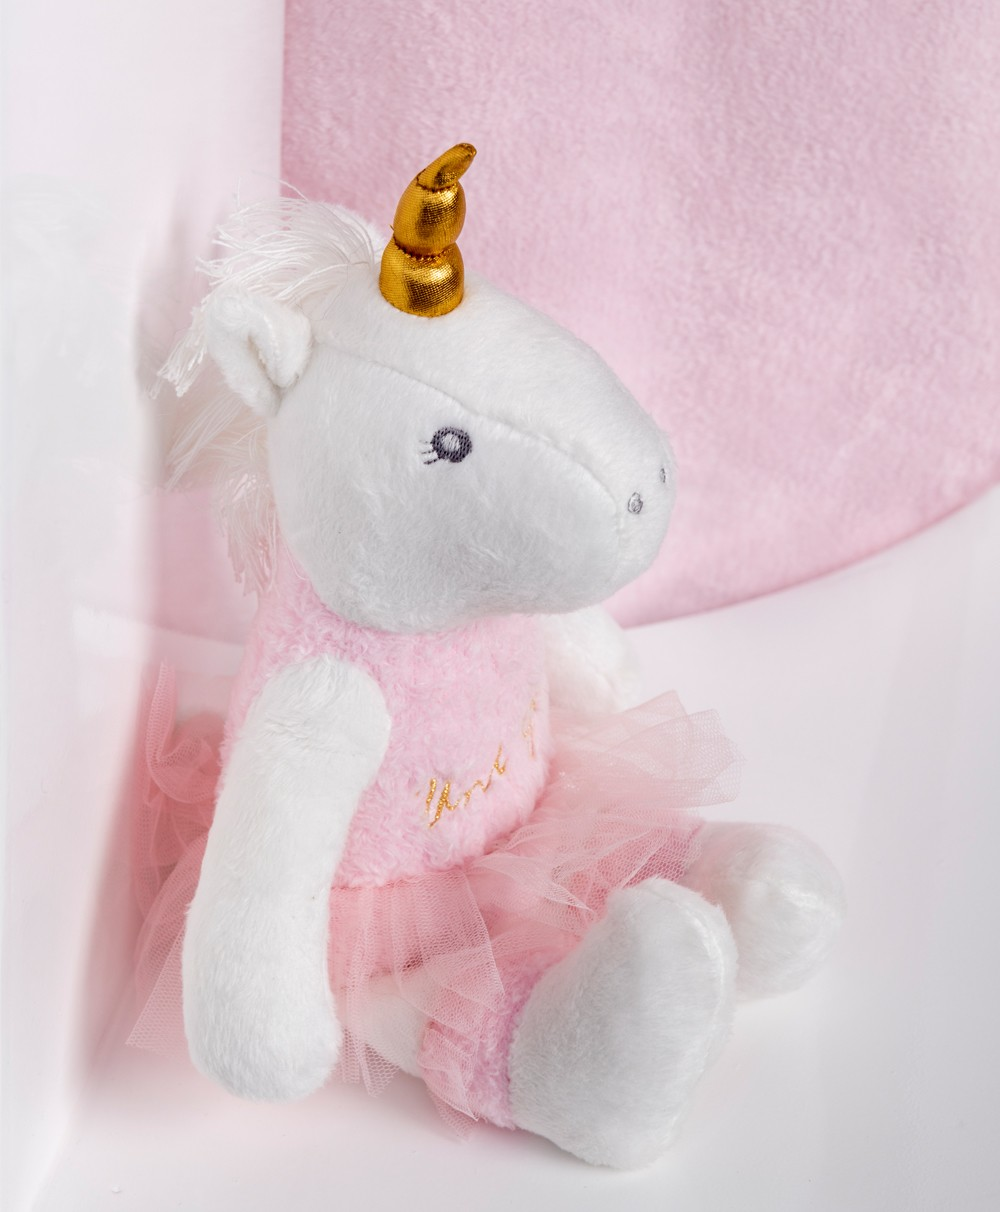 Uniglow Family Knitted Soft Toy